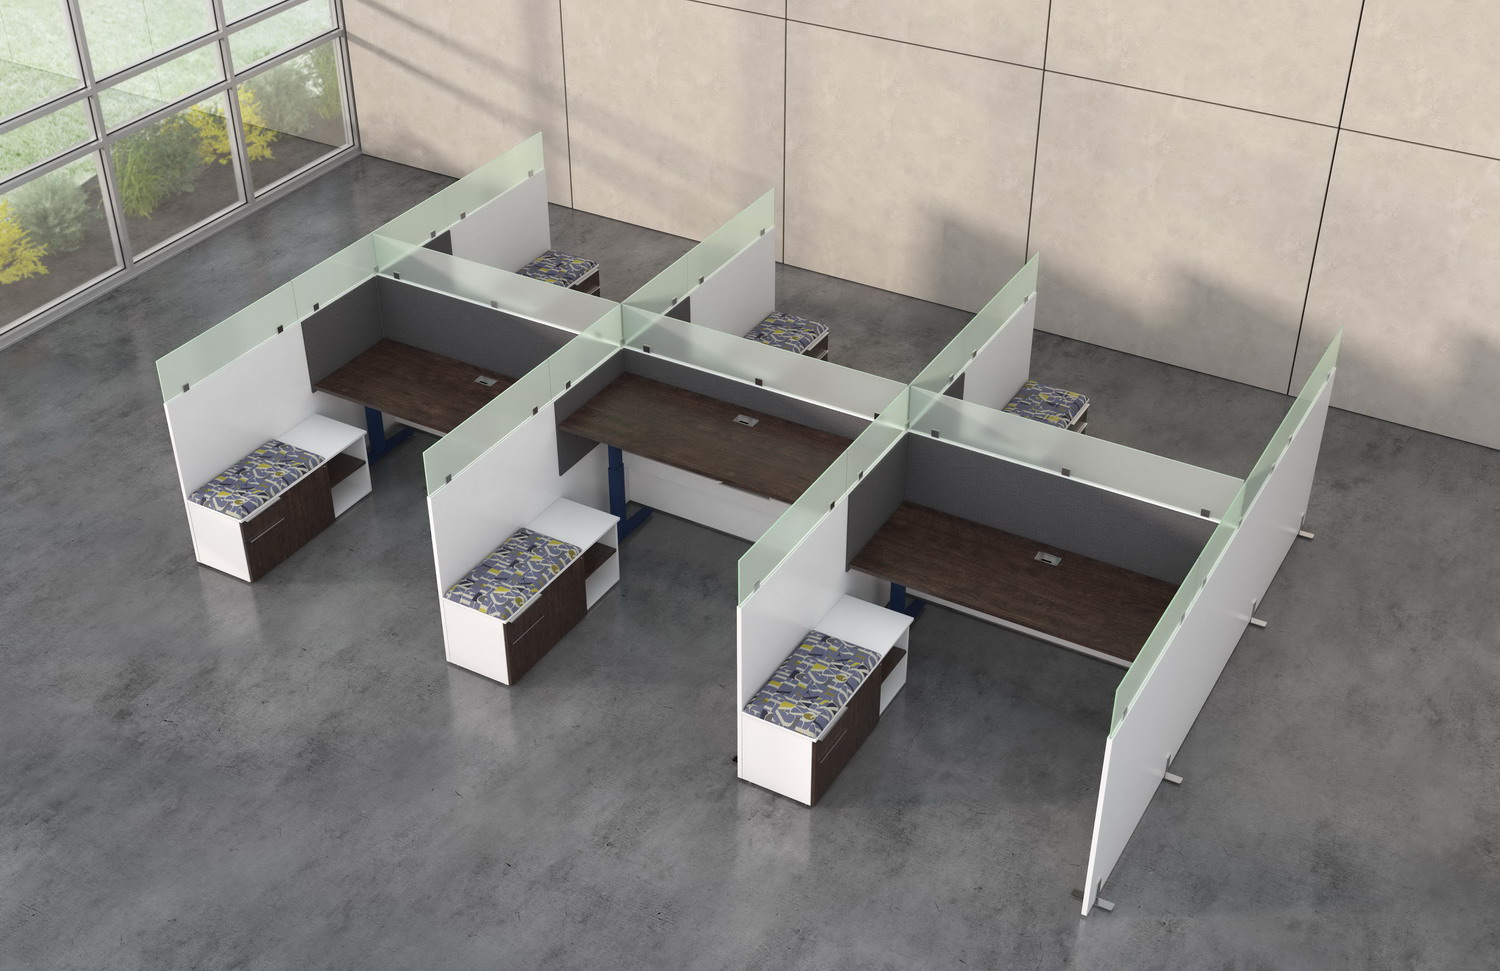 Aerial contract furniture rendering of the Hover benching 6 plex with frosted glass dividers.